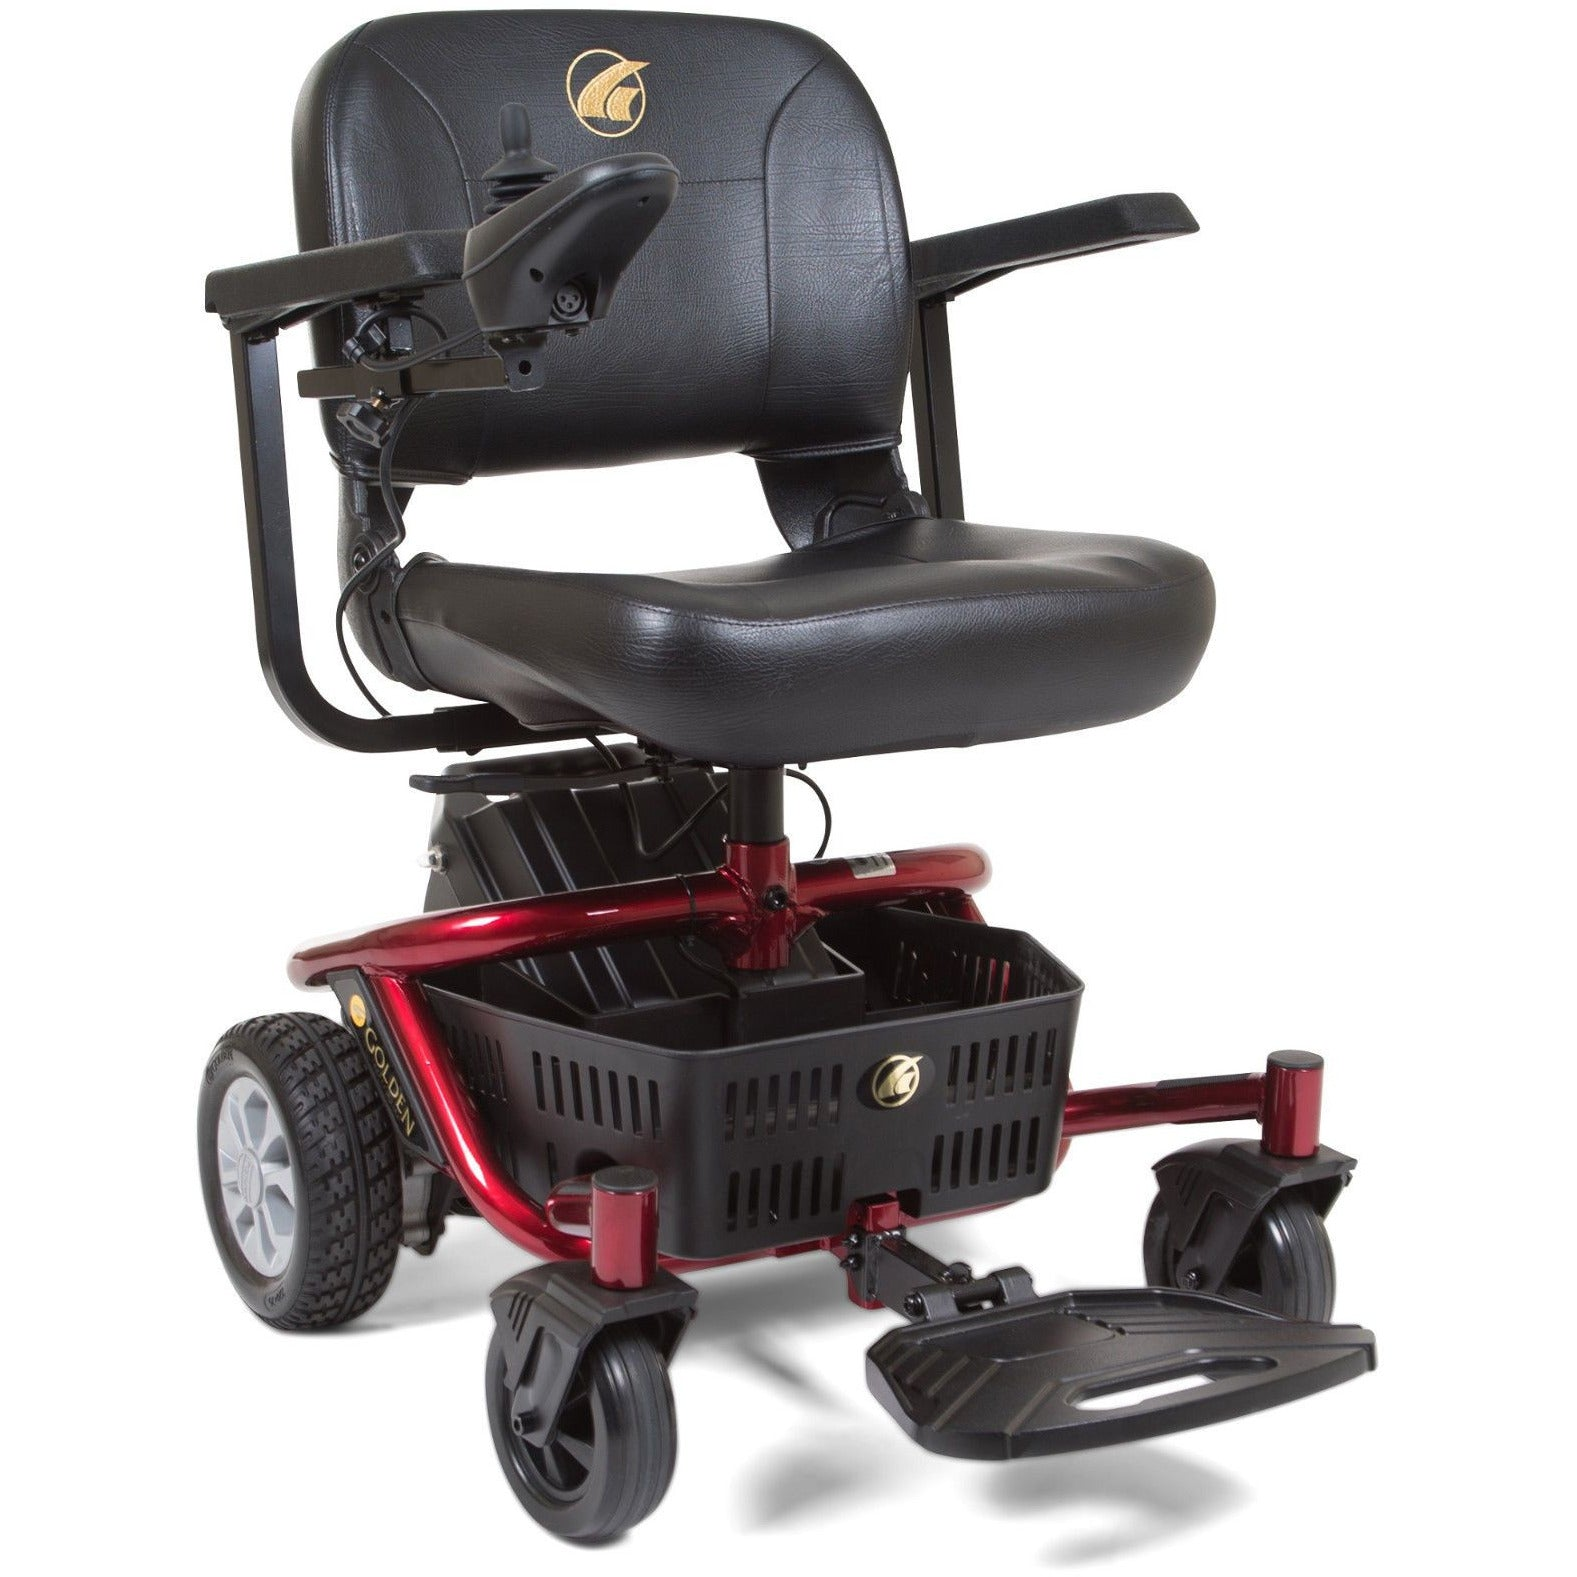 CLICK HERE: Our Golden Technologies LiteRider Envy Portable ...